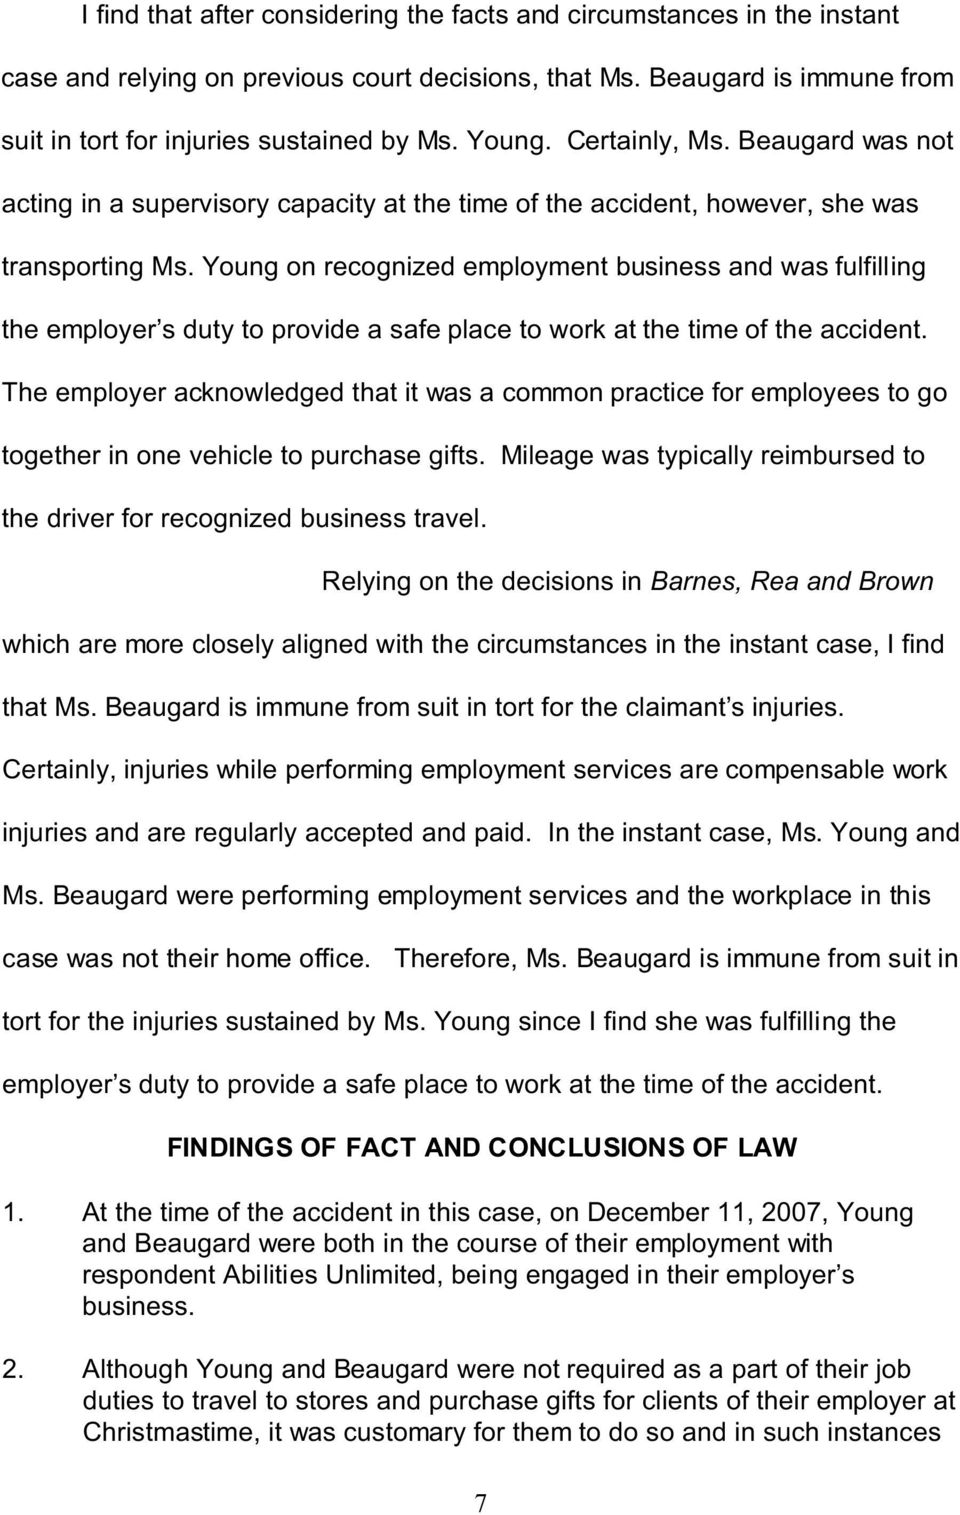 Young on recognized employment business and was fulfilling the employer s duty to provide a safe place to work at the time of the accident.